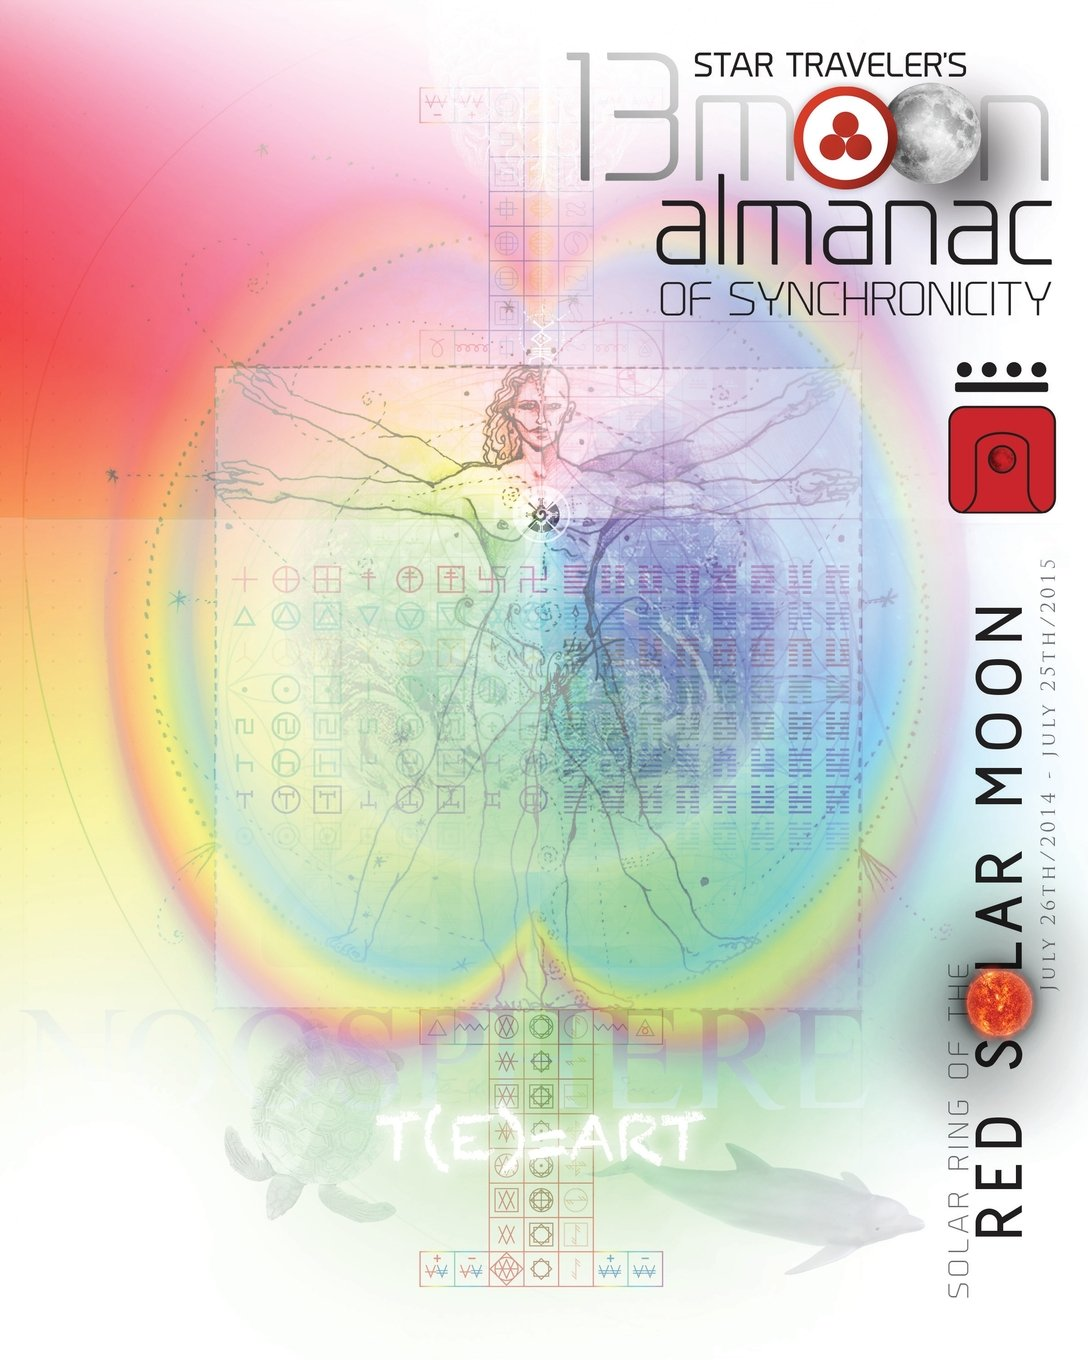 Download Star Traveler's 13 Moon Almanac of Synchronicity: Solar Ring of the Red Solar Moon (July 26th/2014 - July 25th/2015) pdf epub